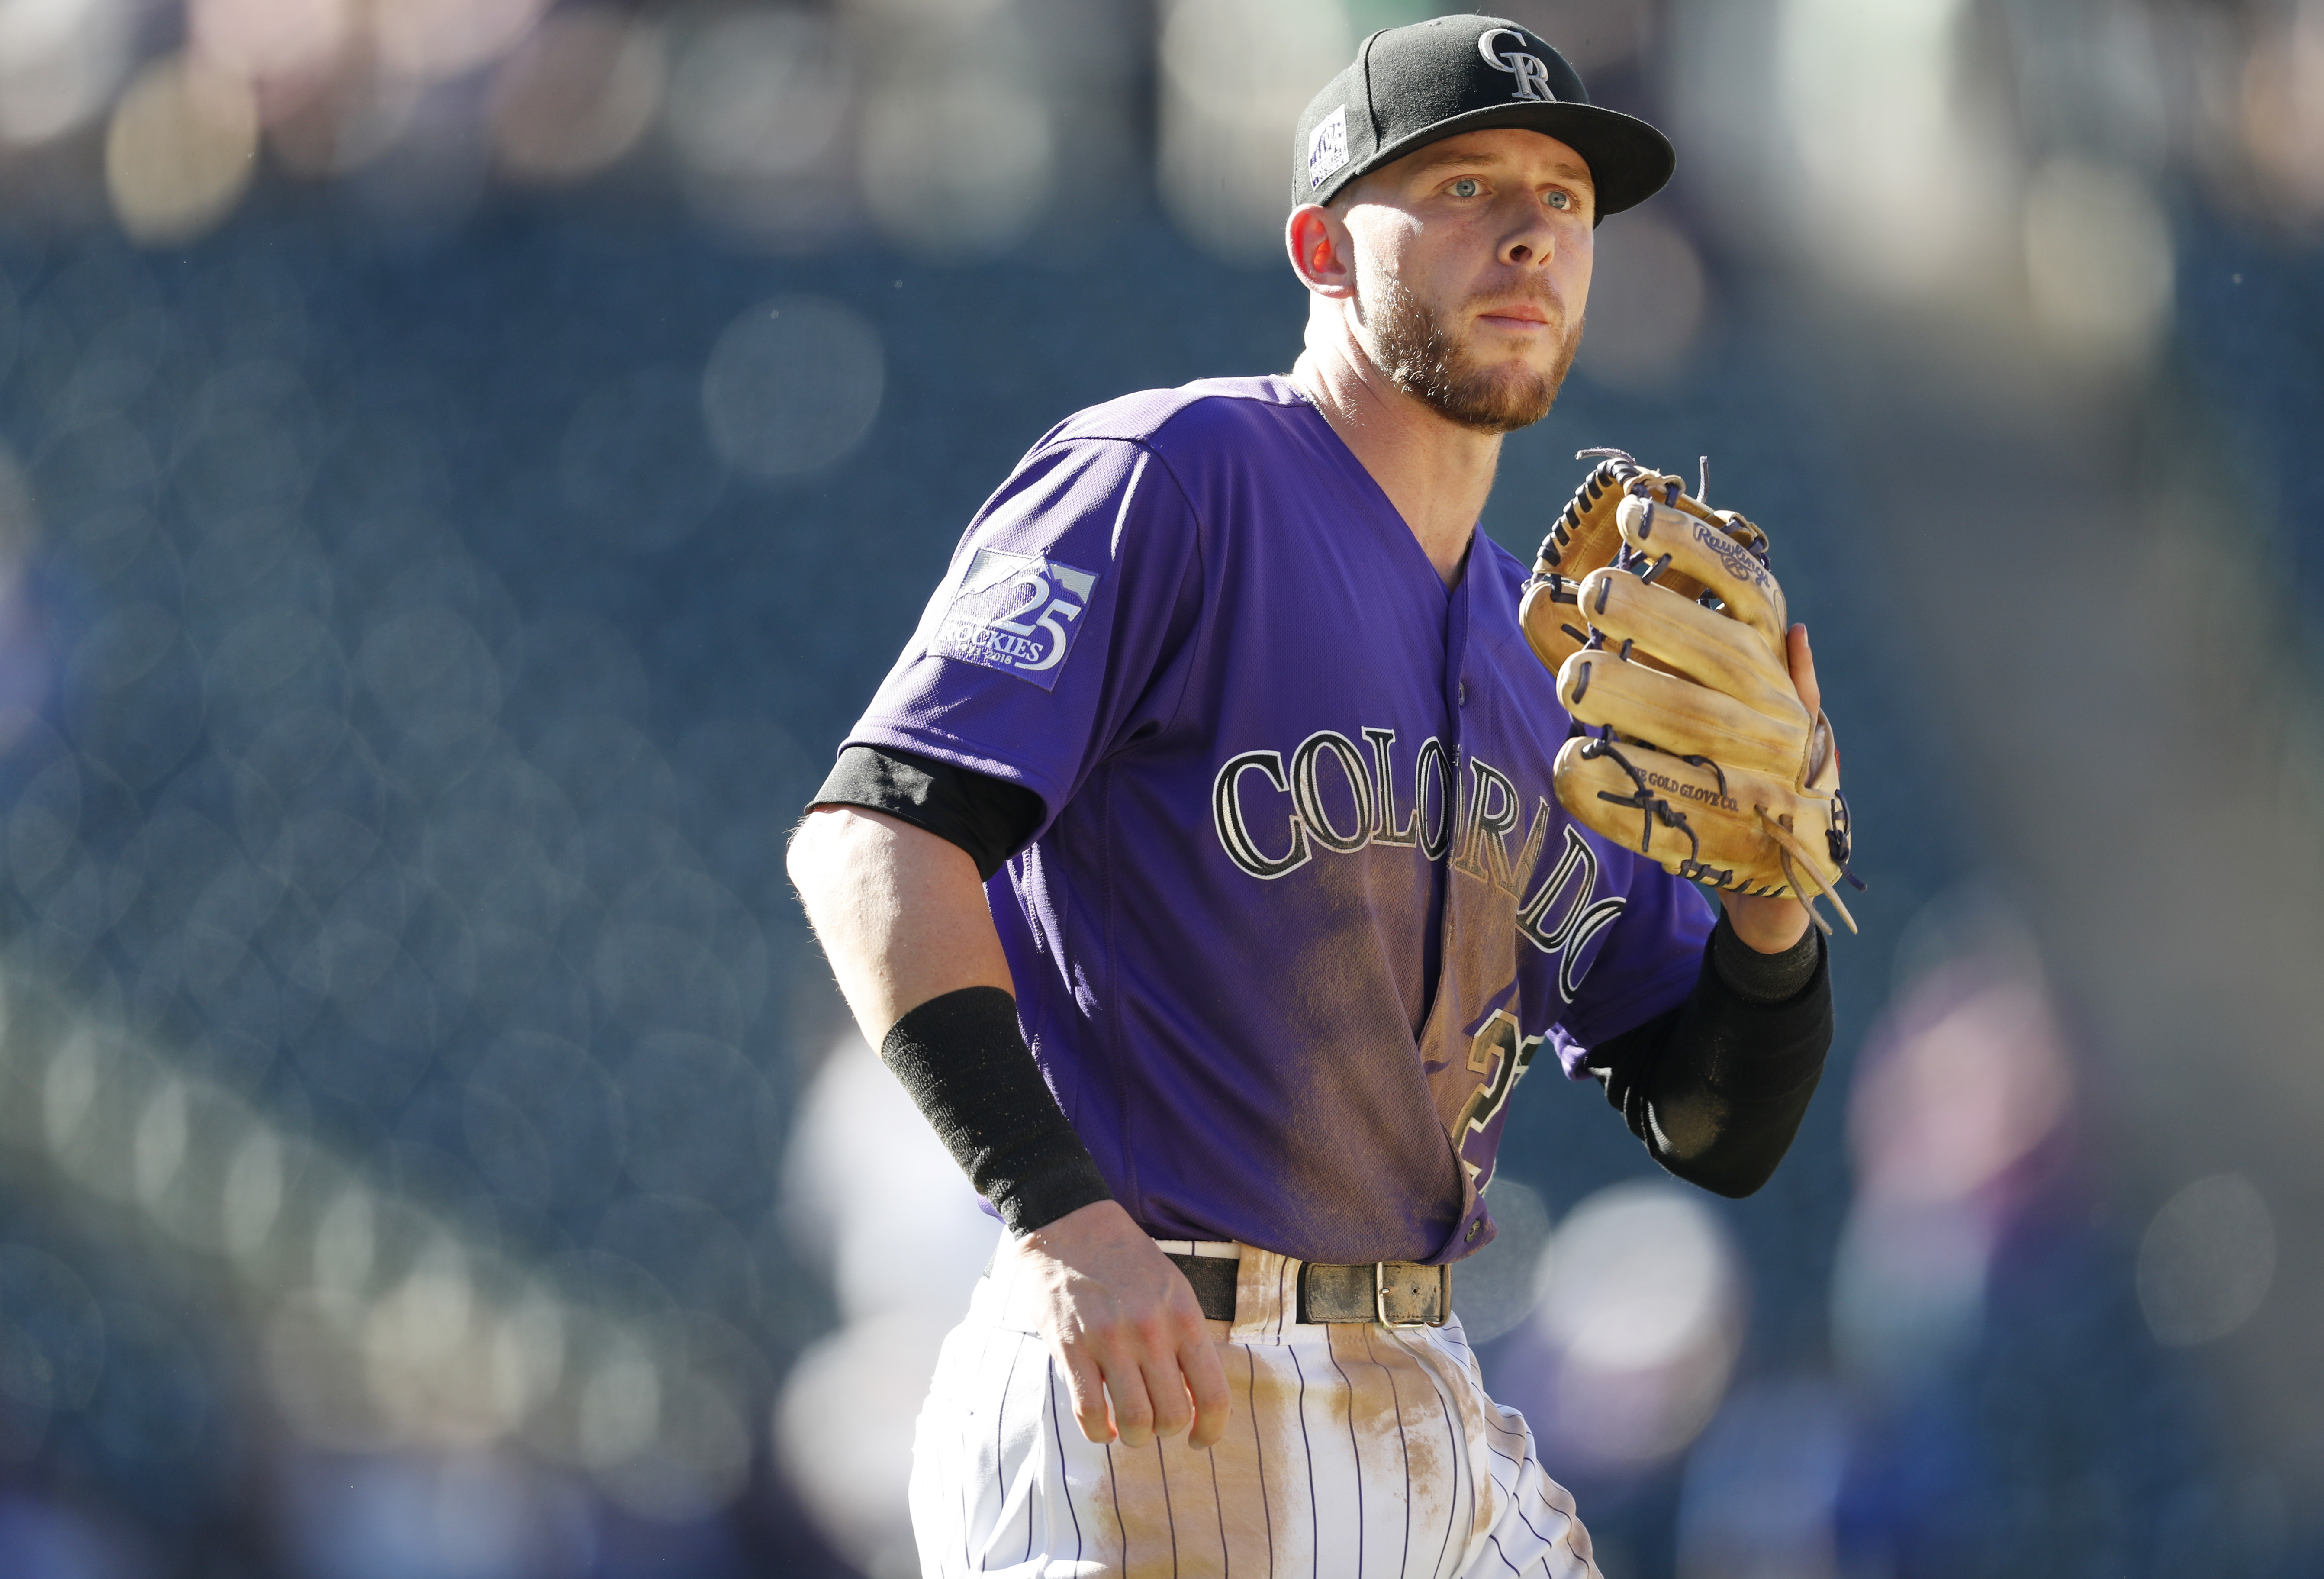 Story returns to lineup for playoff-chasing Rockies